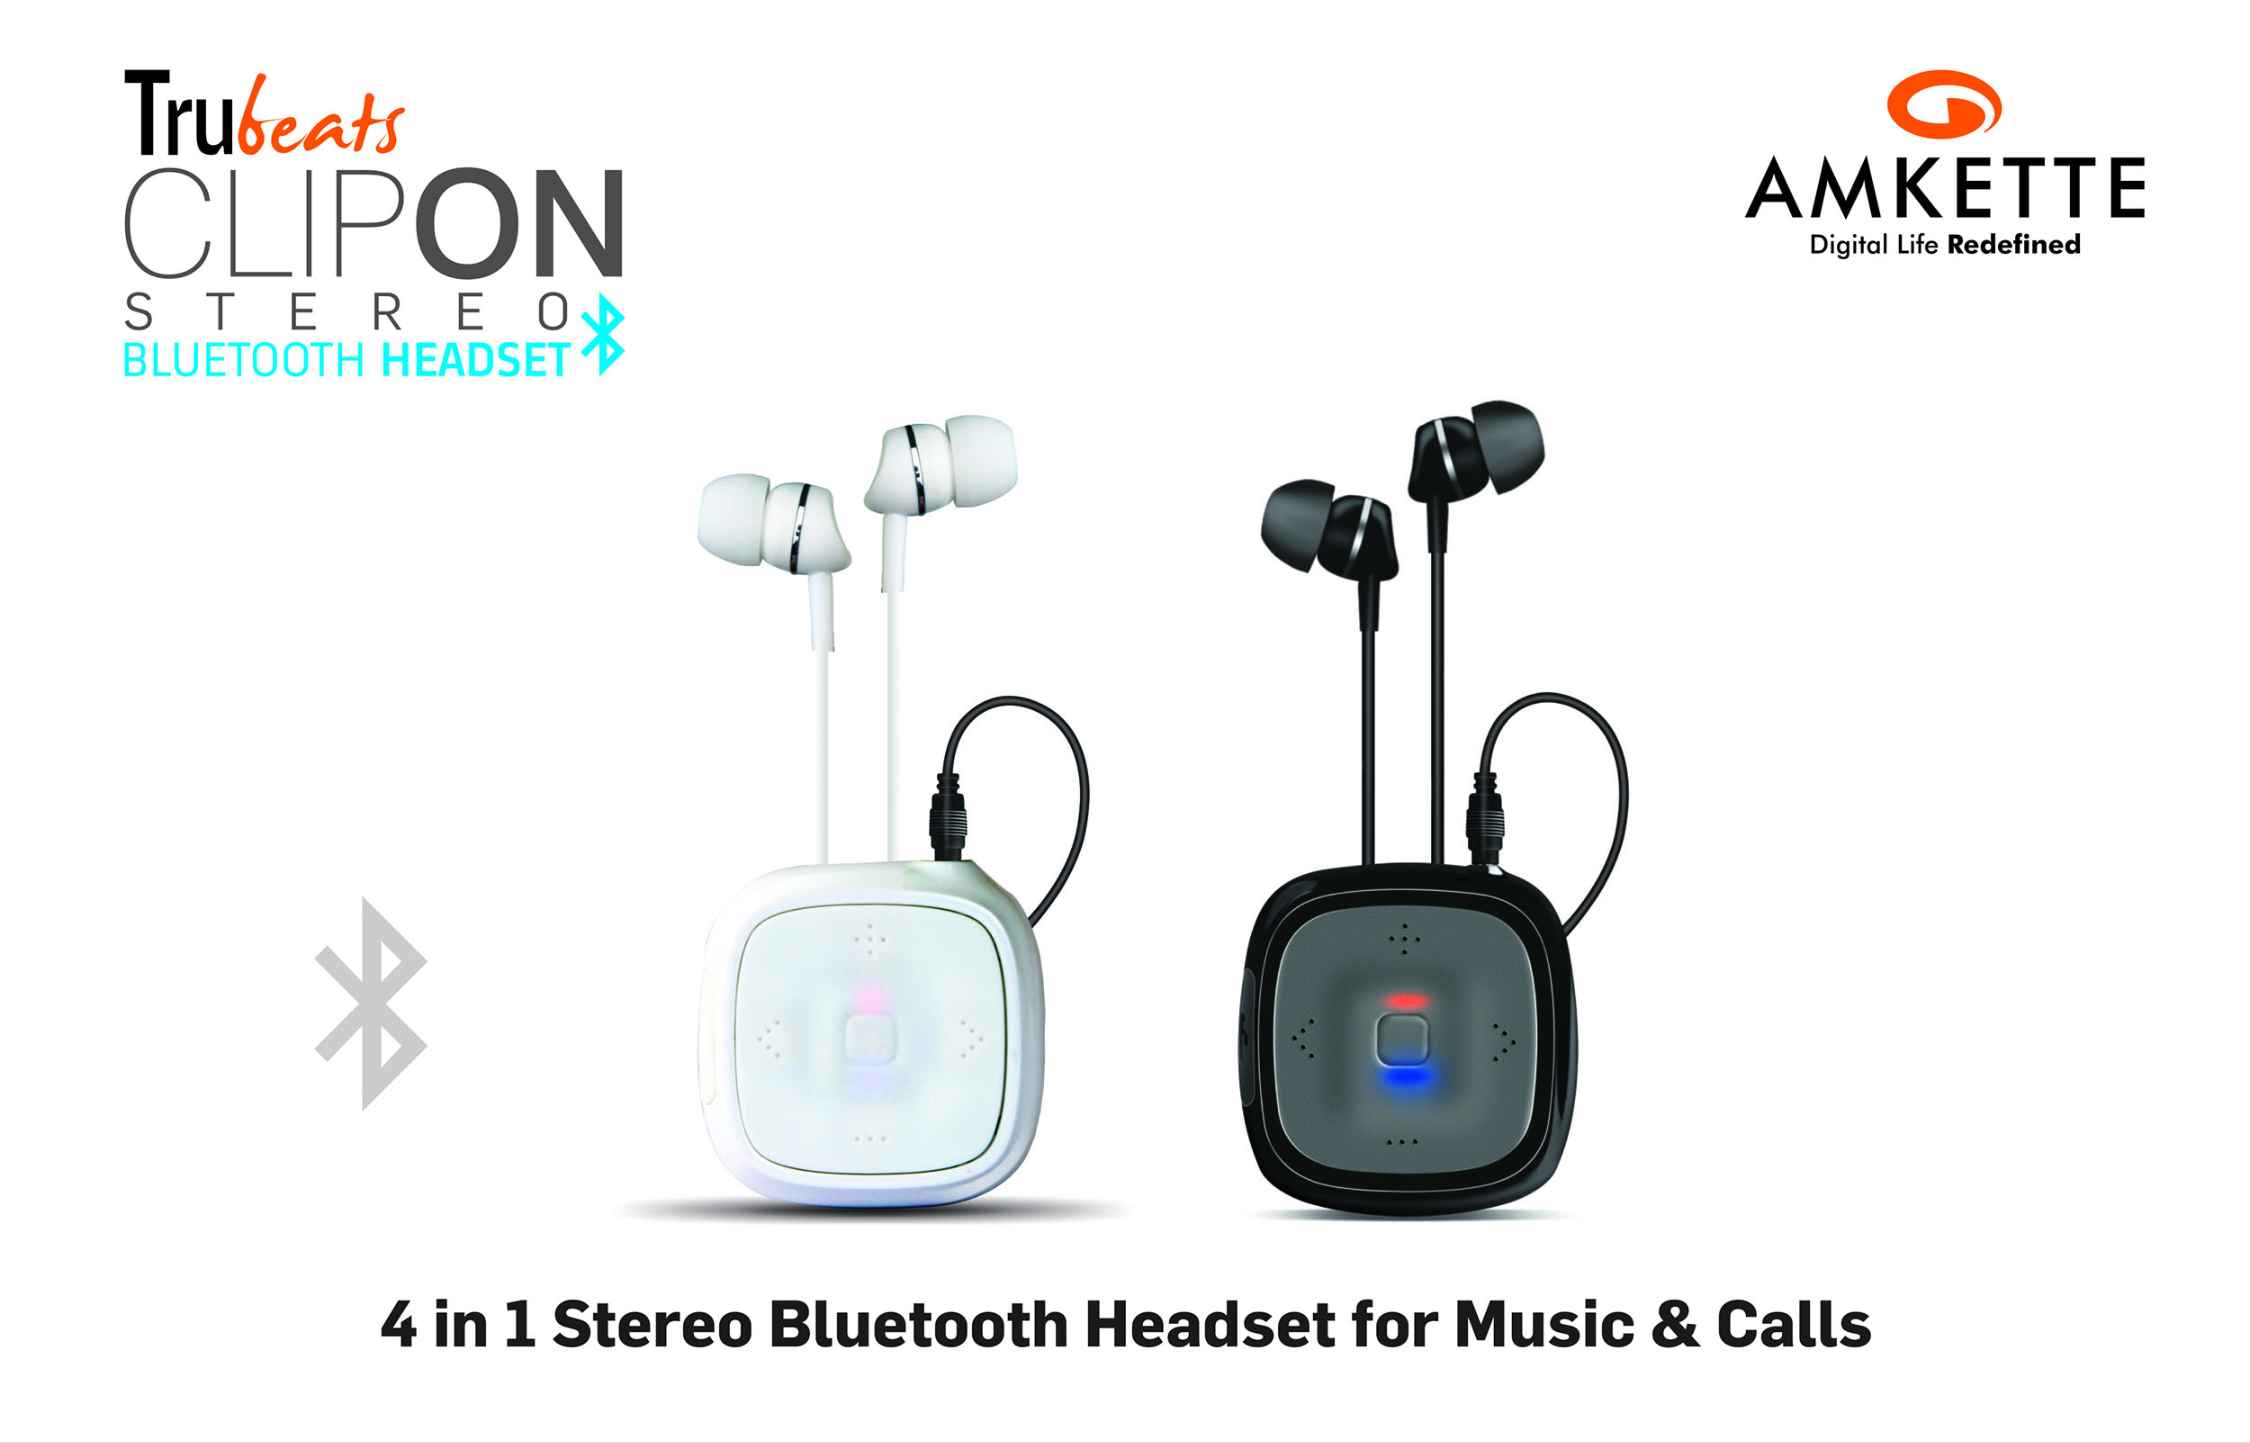 amkette truebeats clipon bluetooth headset